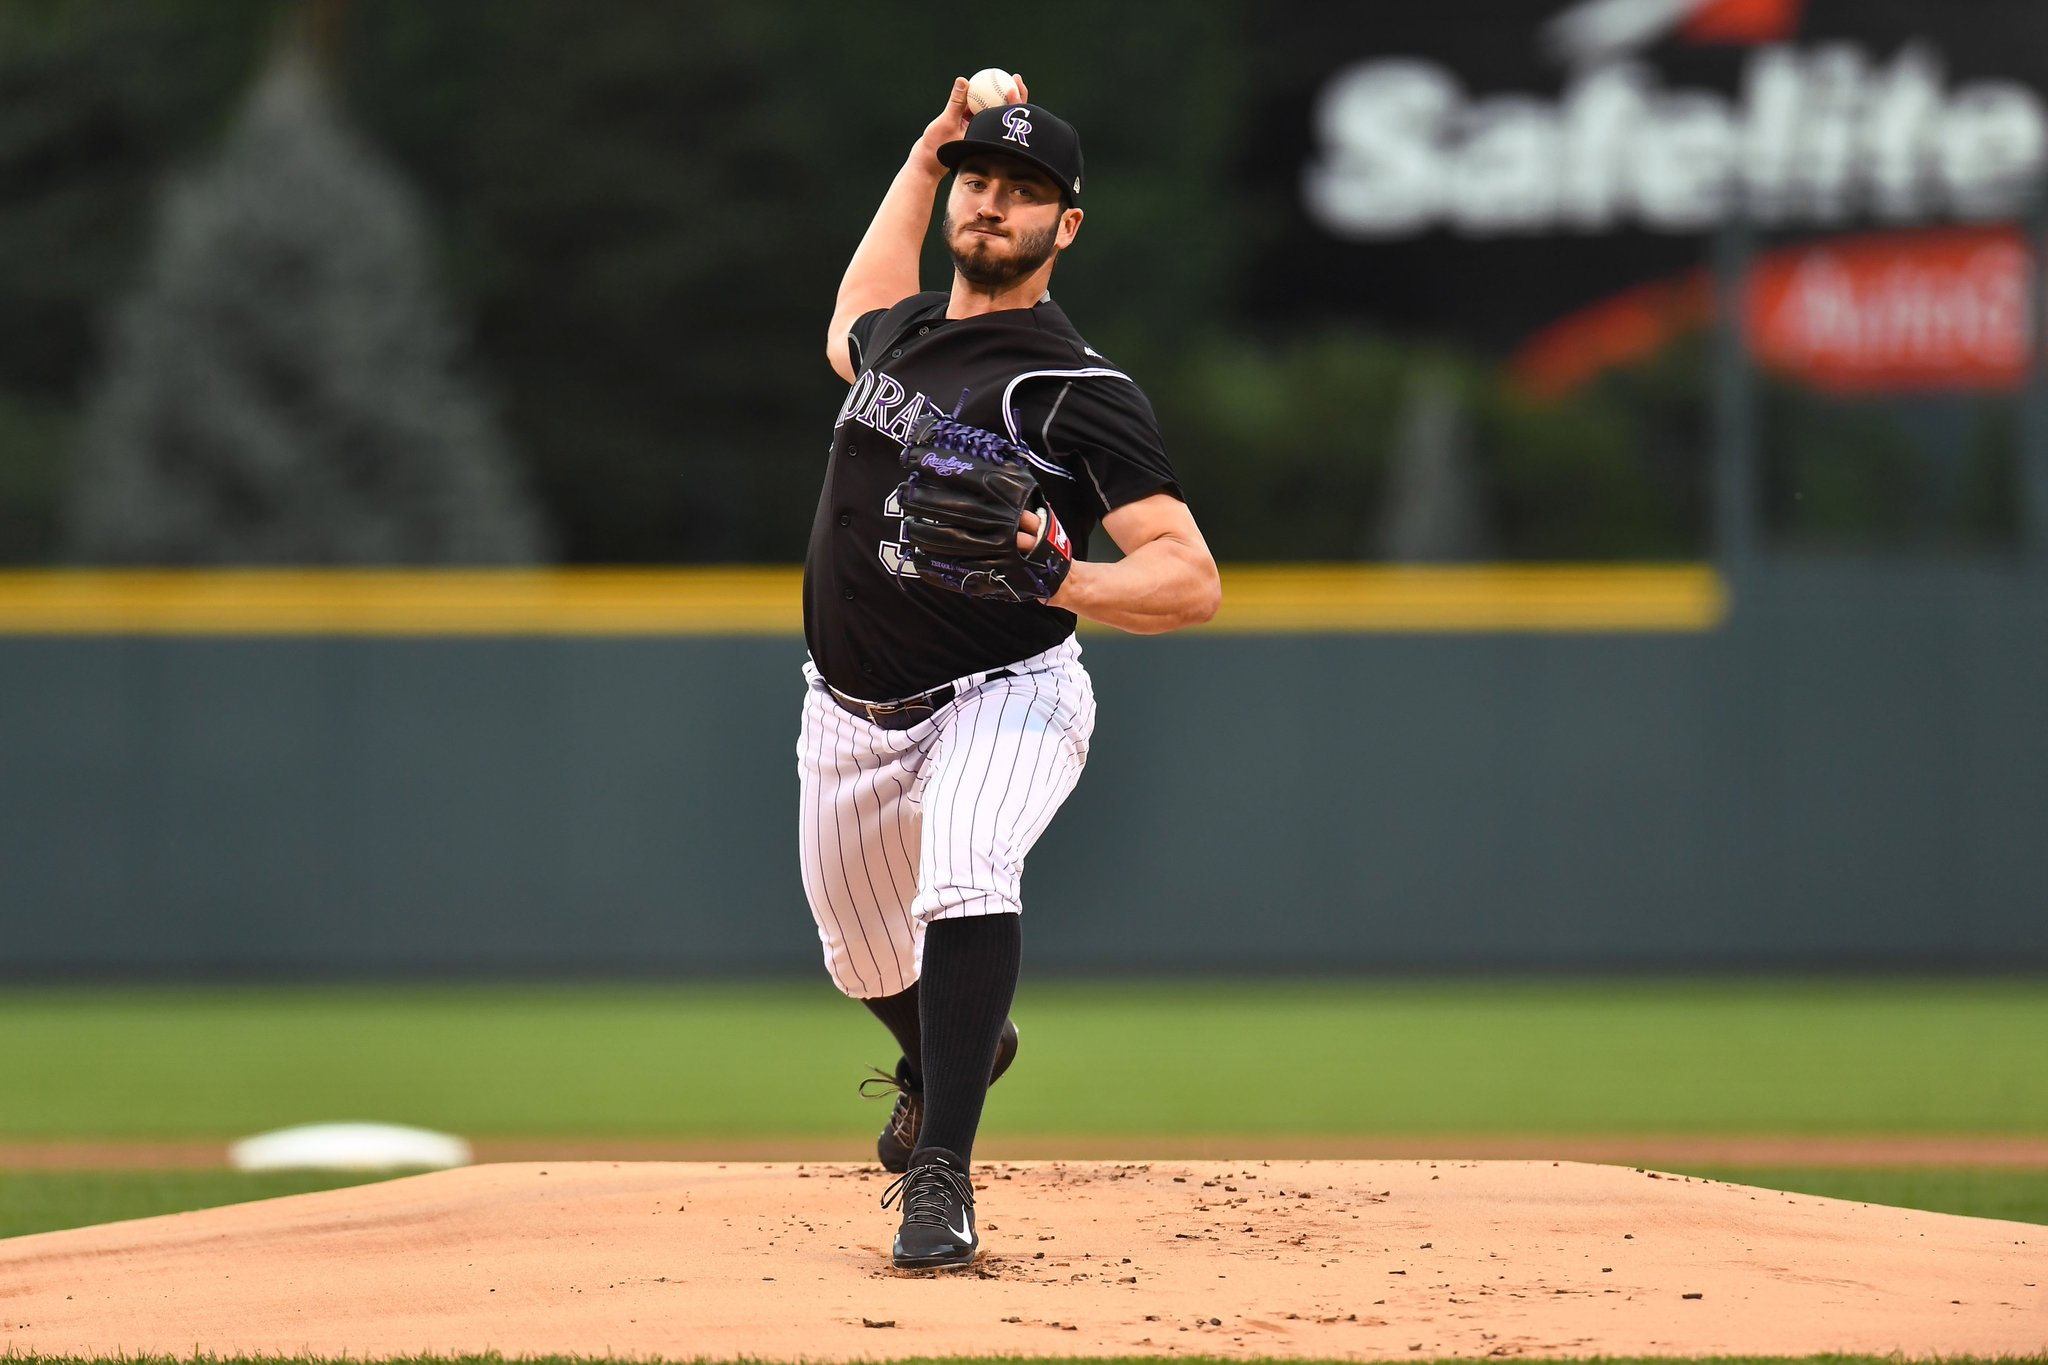 ��  Chad Bettis throws seven shutout innings in first start since beating cancer https://t.co/HxLy75ATo0 https://t.co/jRqCO6HpSD